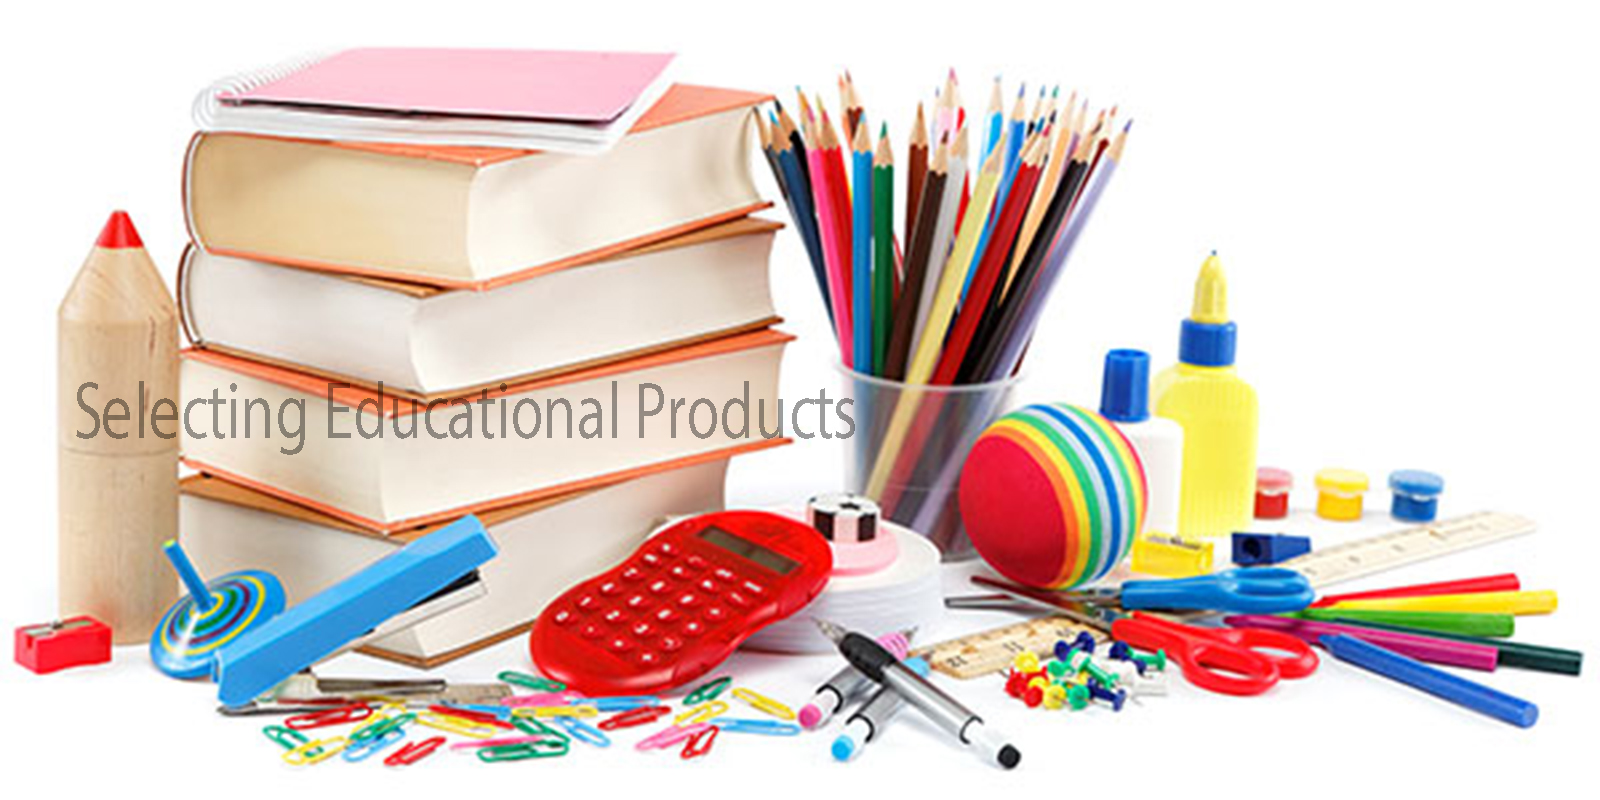 Selecting Educational Products